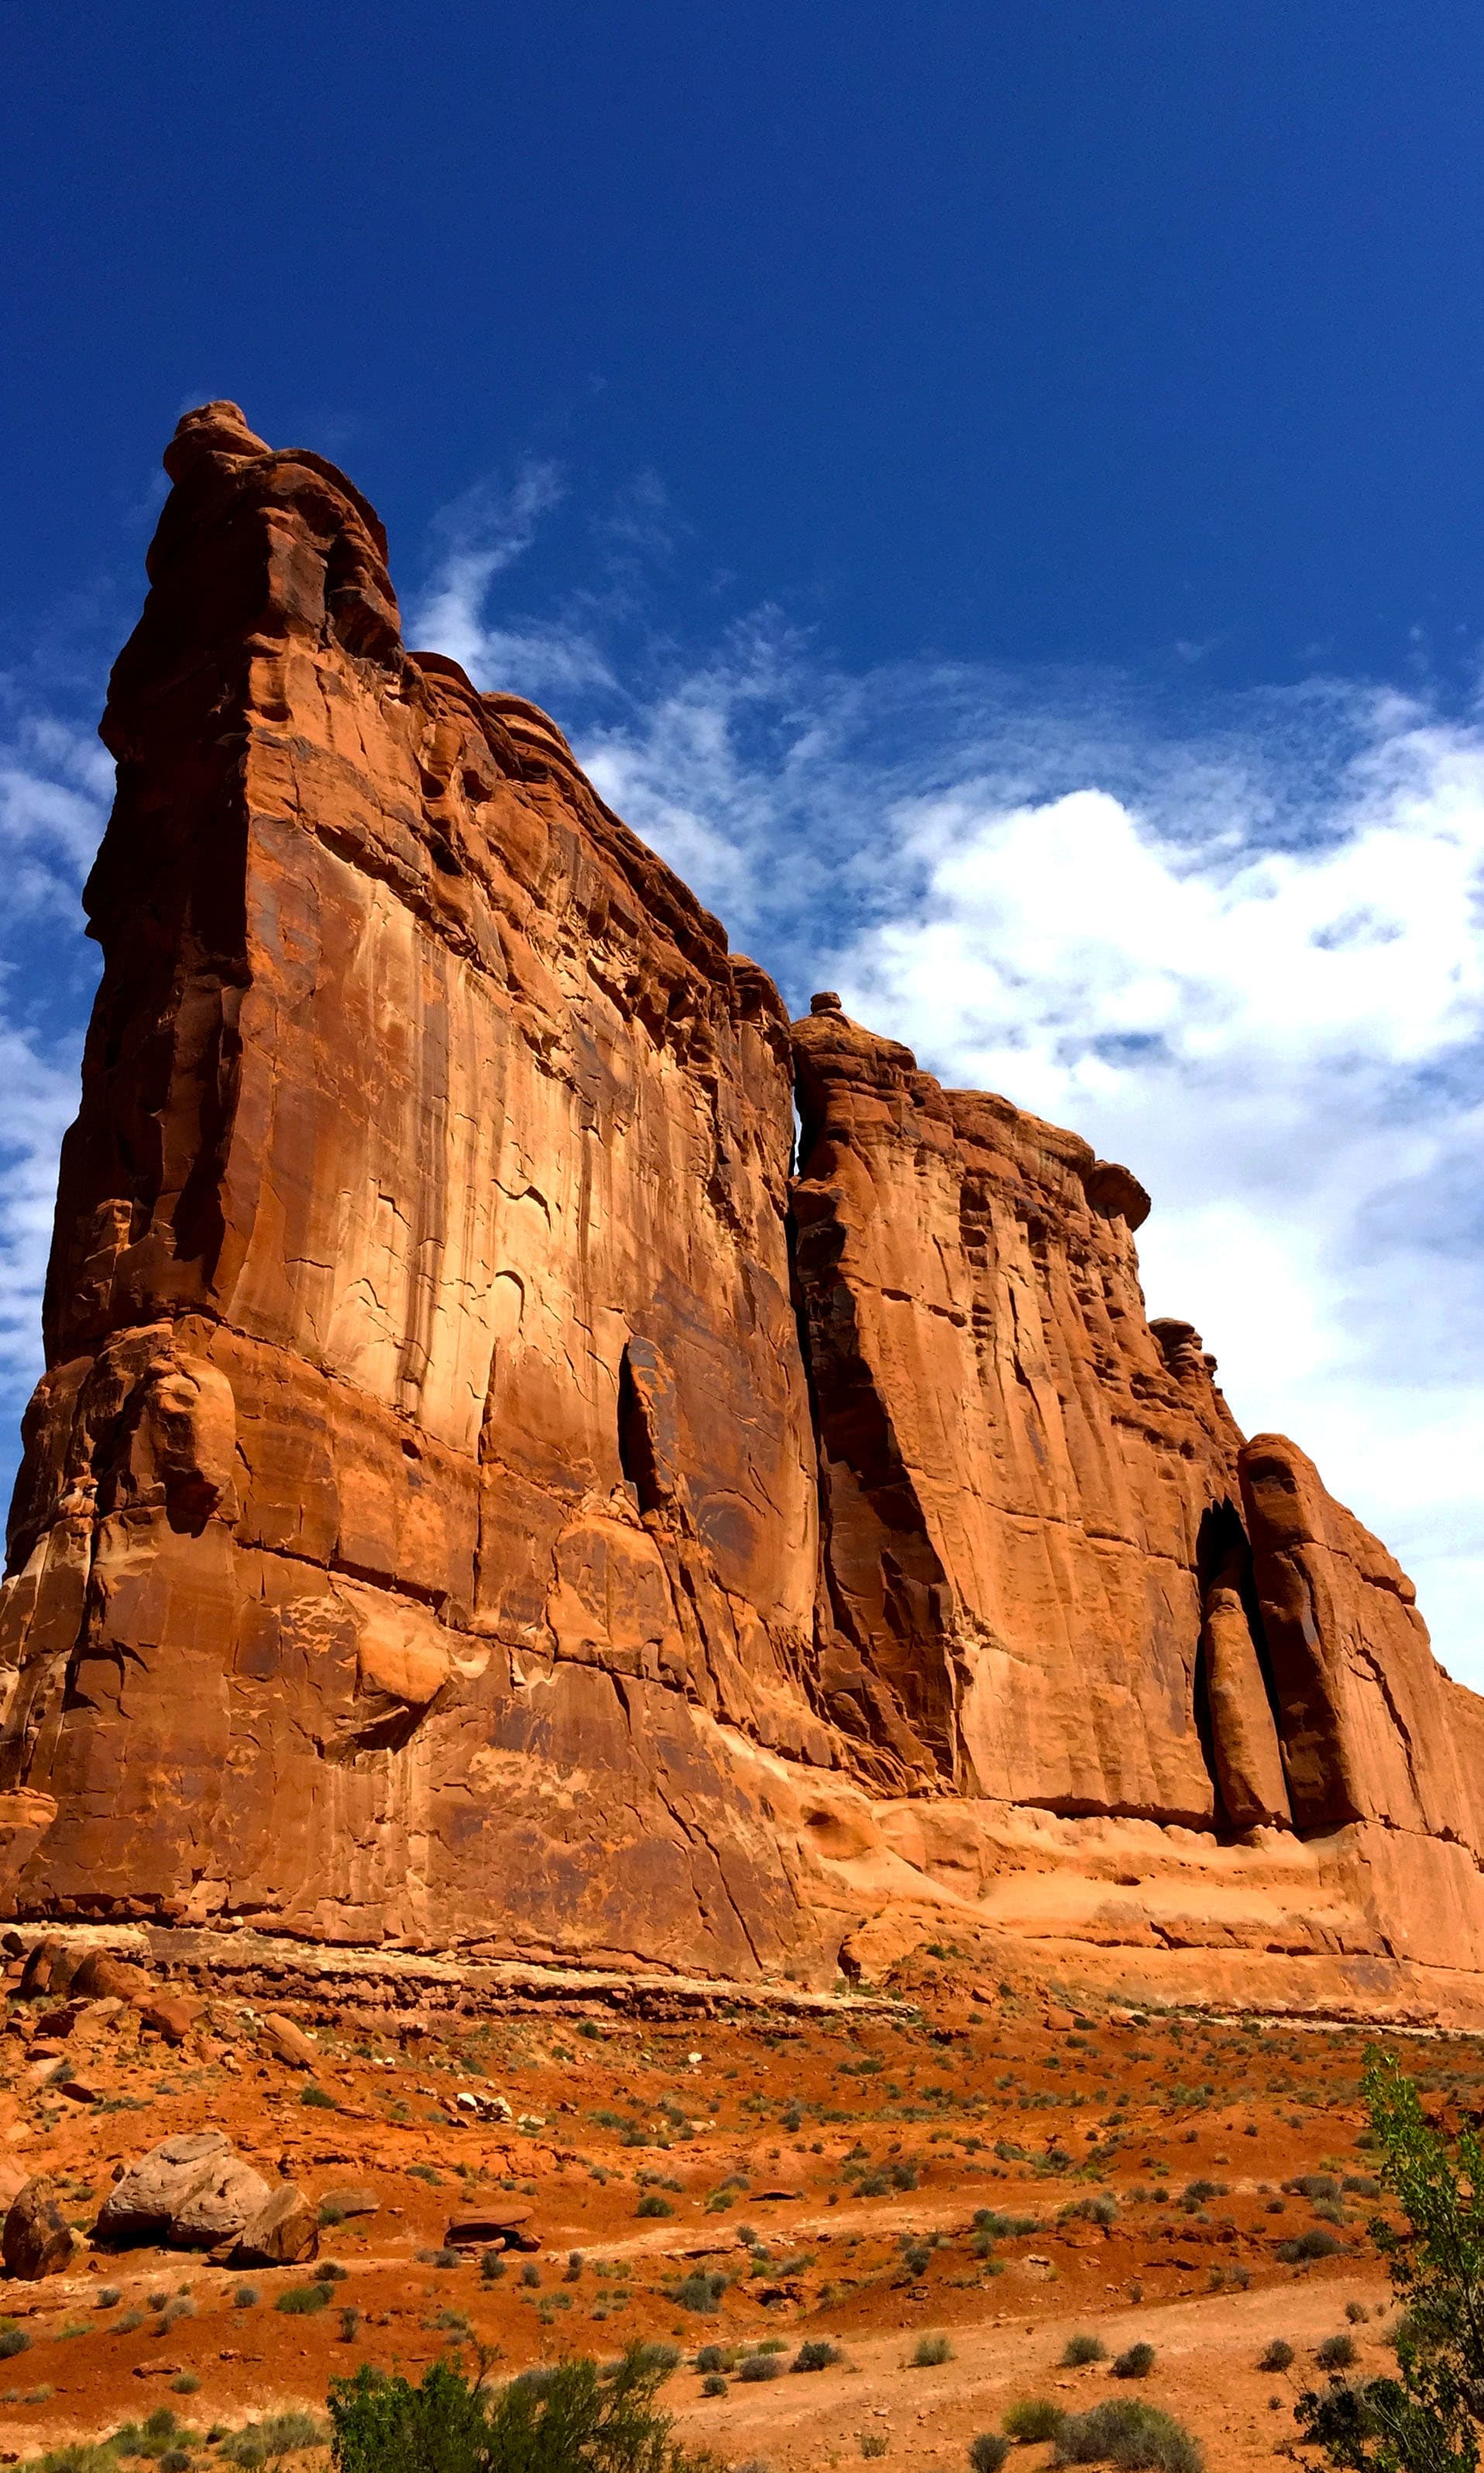 A lone standing rock in Arches National Park. —Hassan Majeed